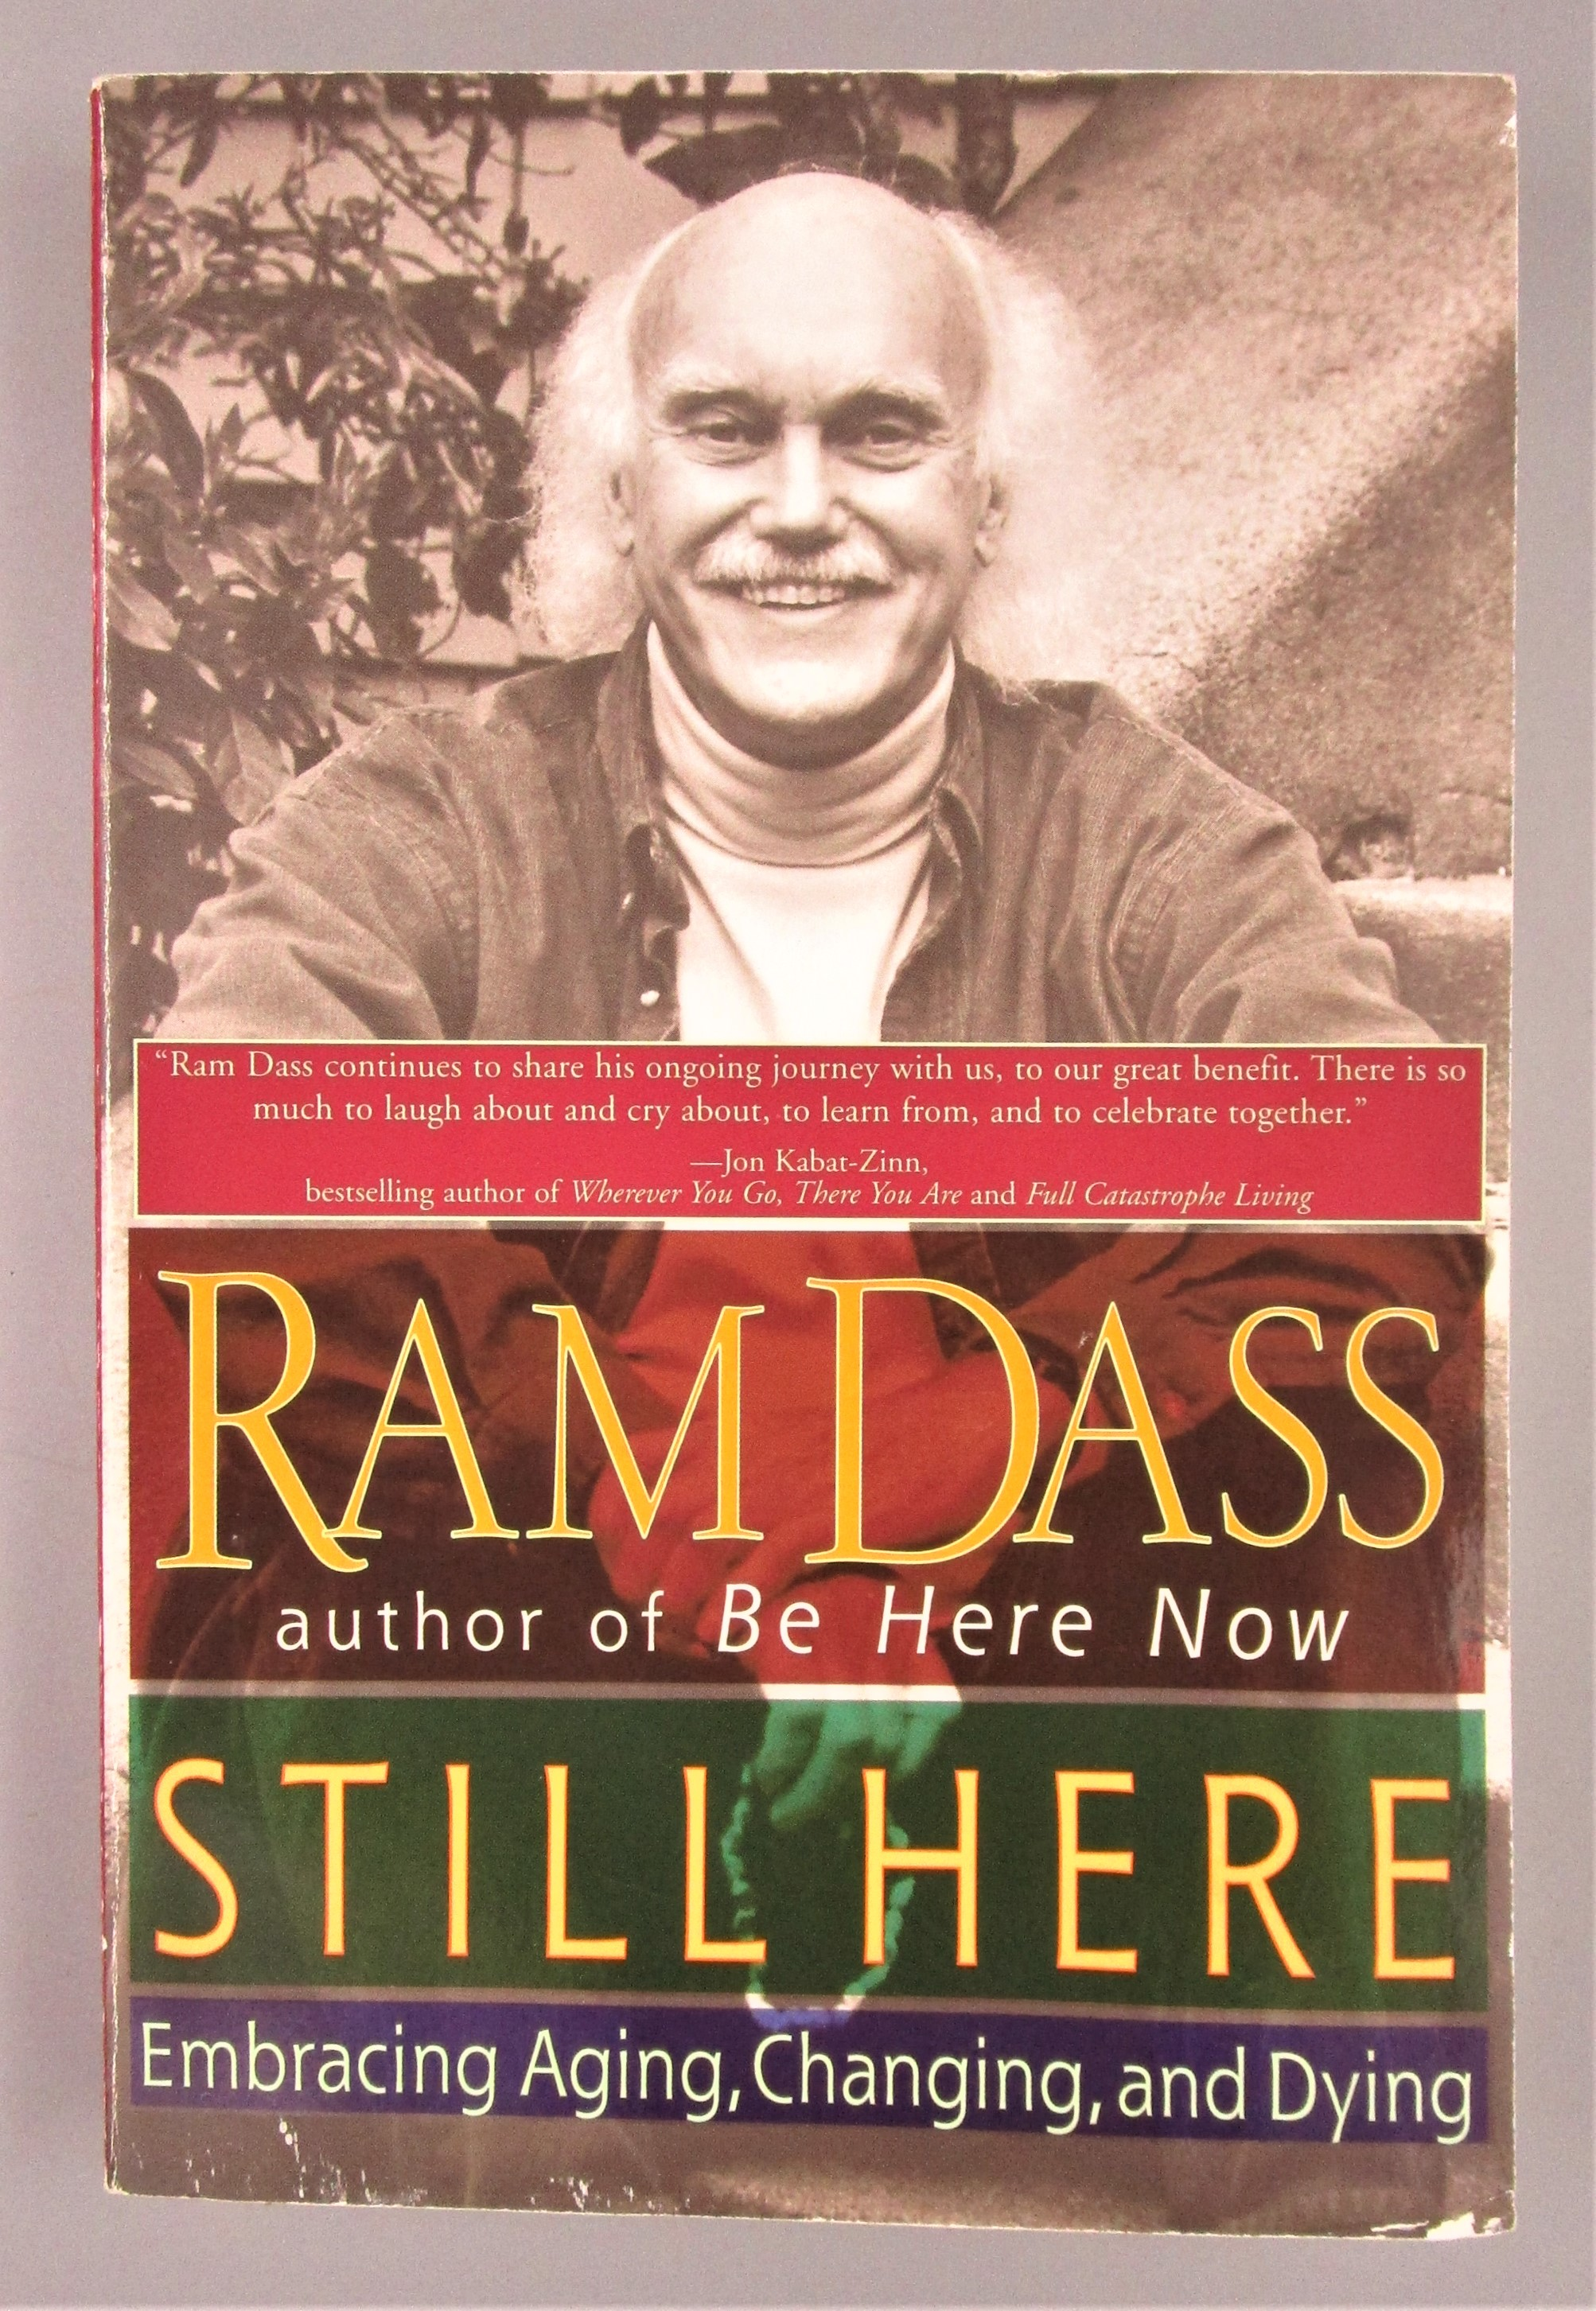 STILL HERE: EMBRACING AGING, CHANGING, AND DYING, by Ram Dass - 2001 [Signed]